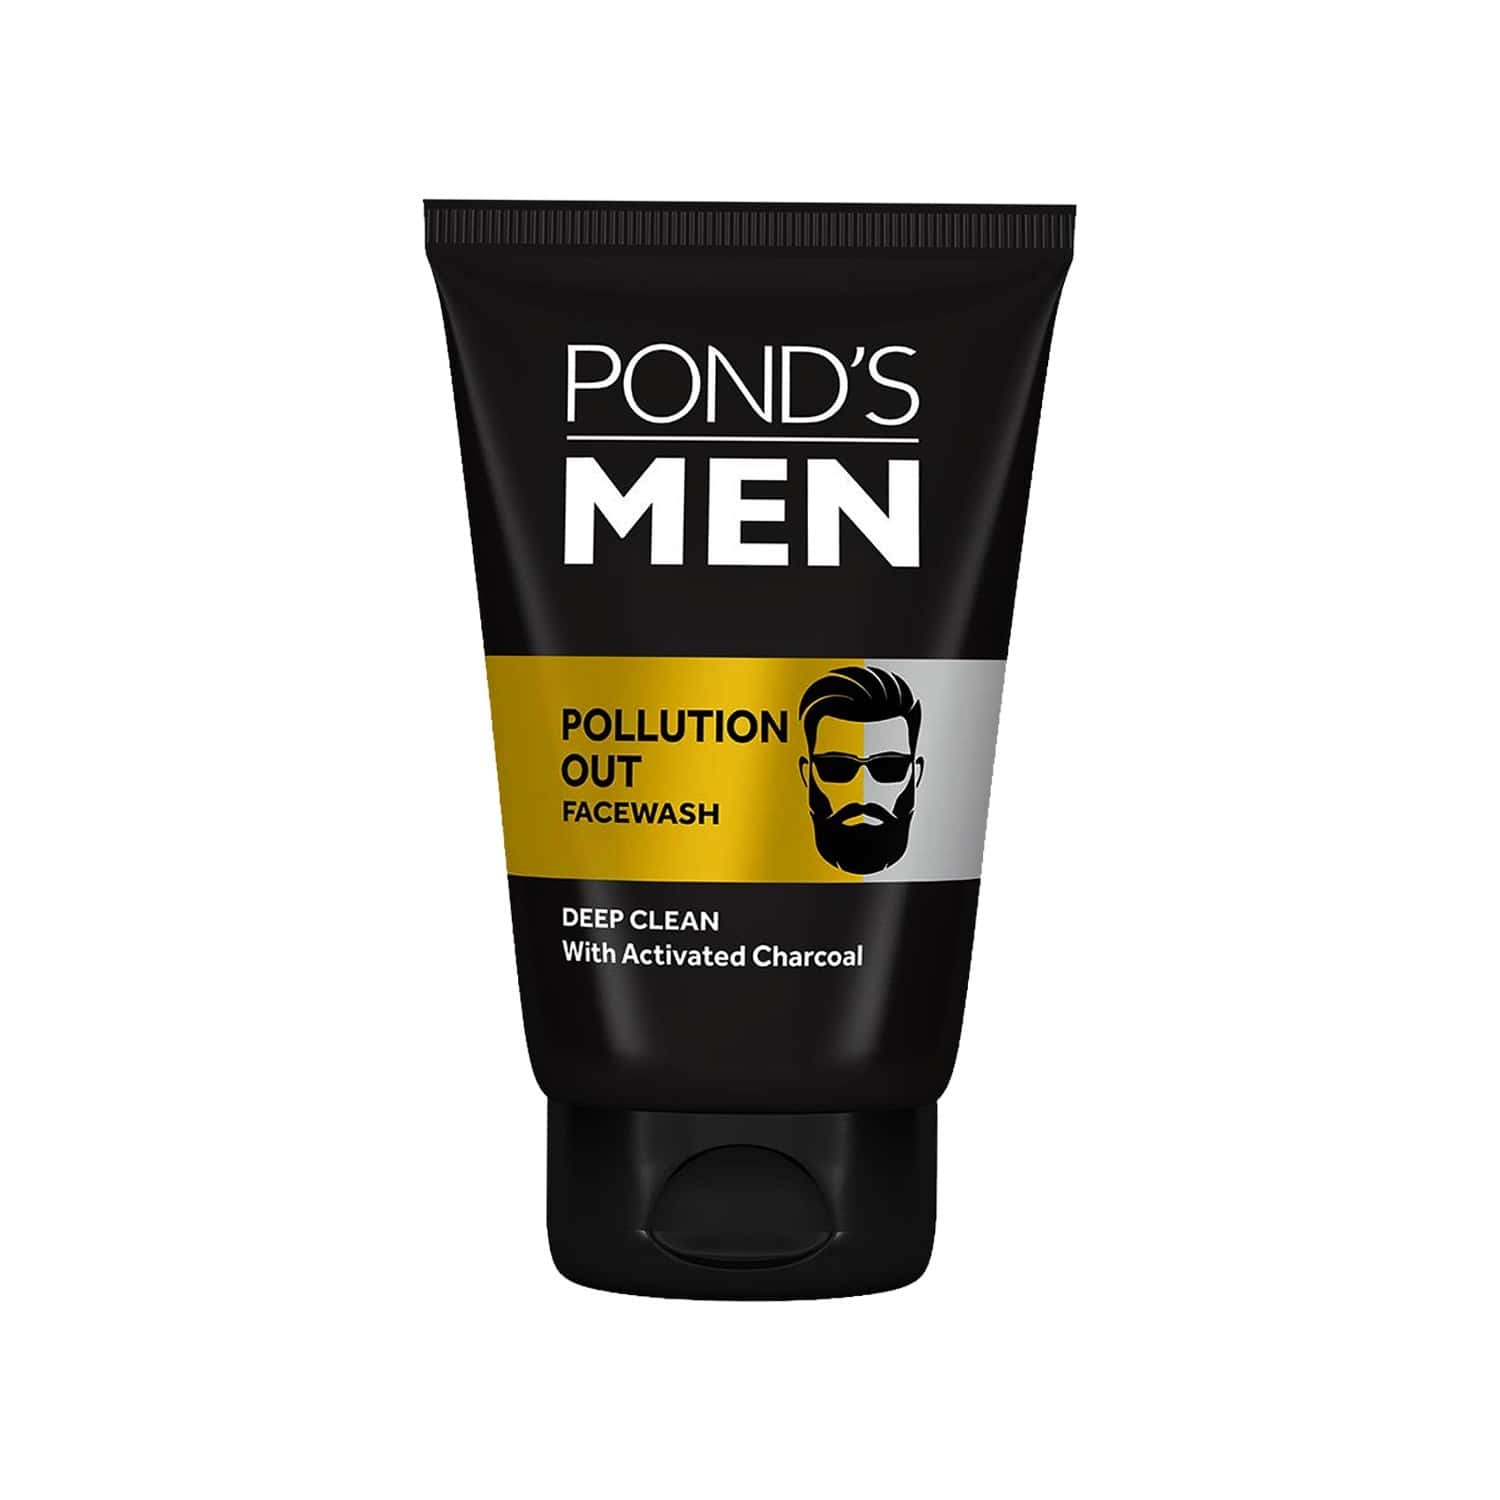 Pond's Men Pollution Out Activated Charcoal Deep Clean Facewash - 100 G